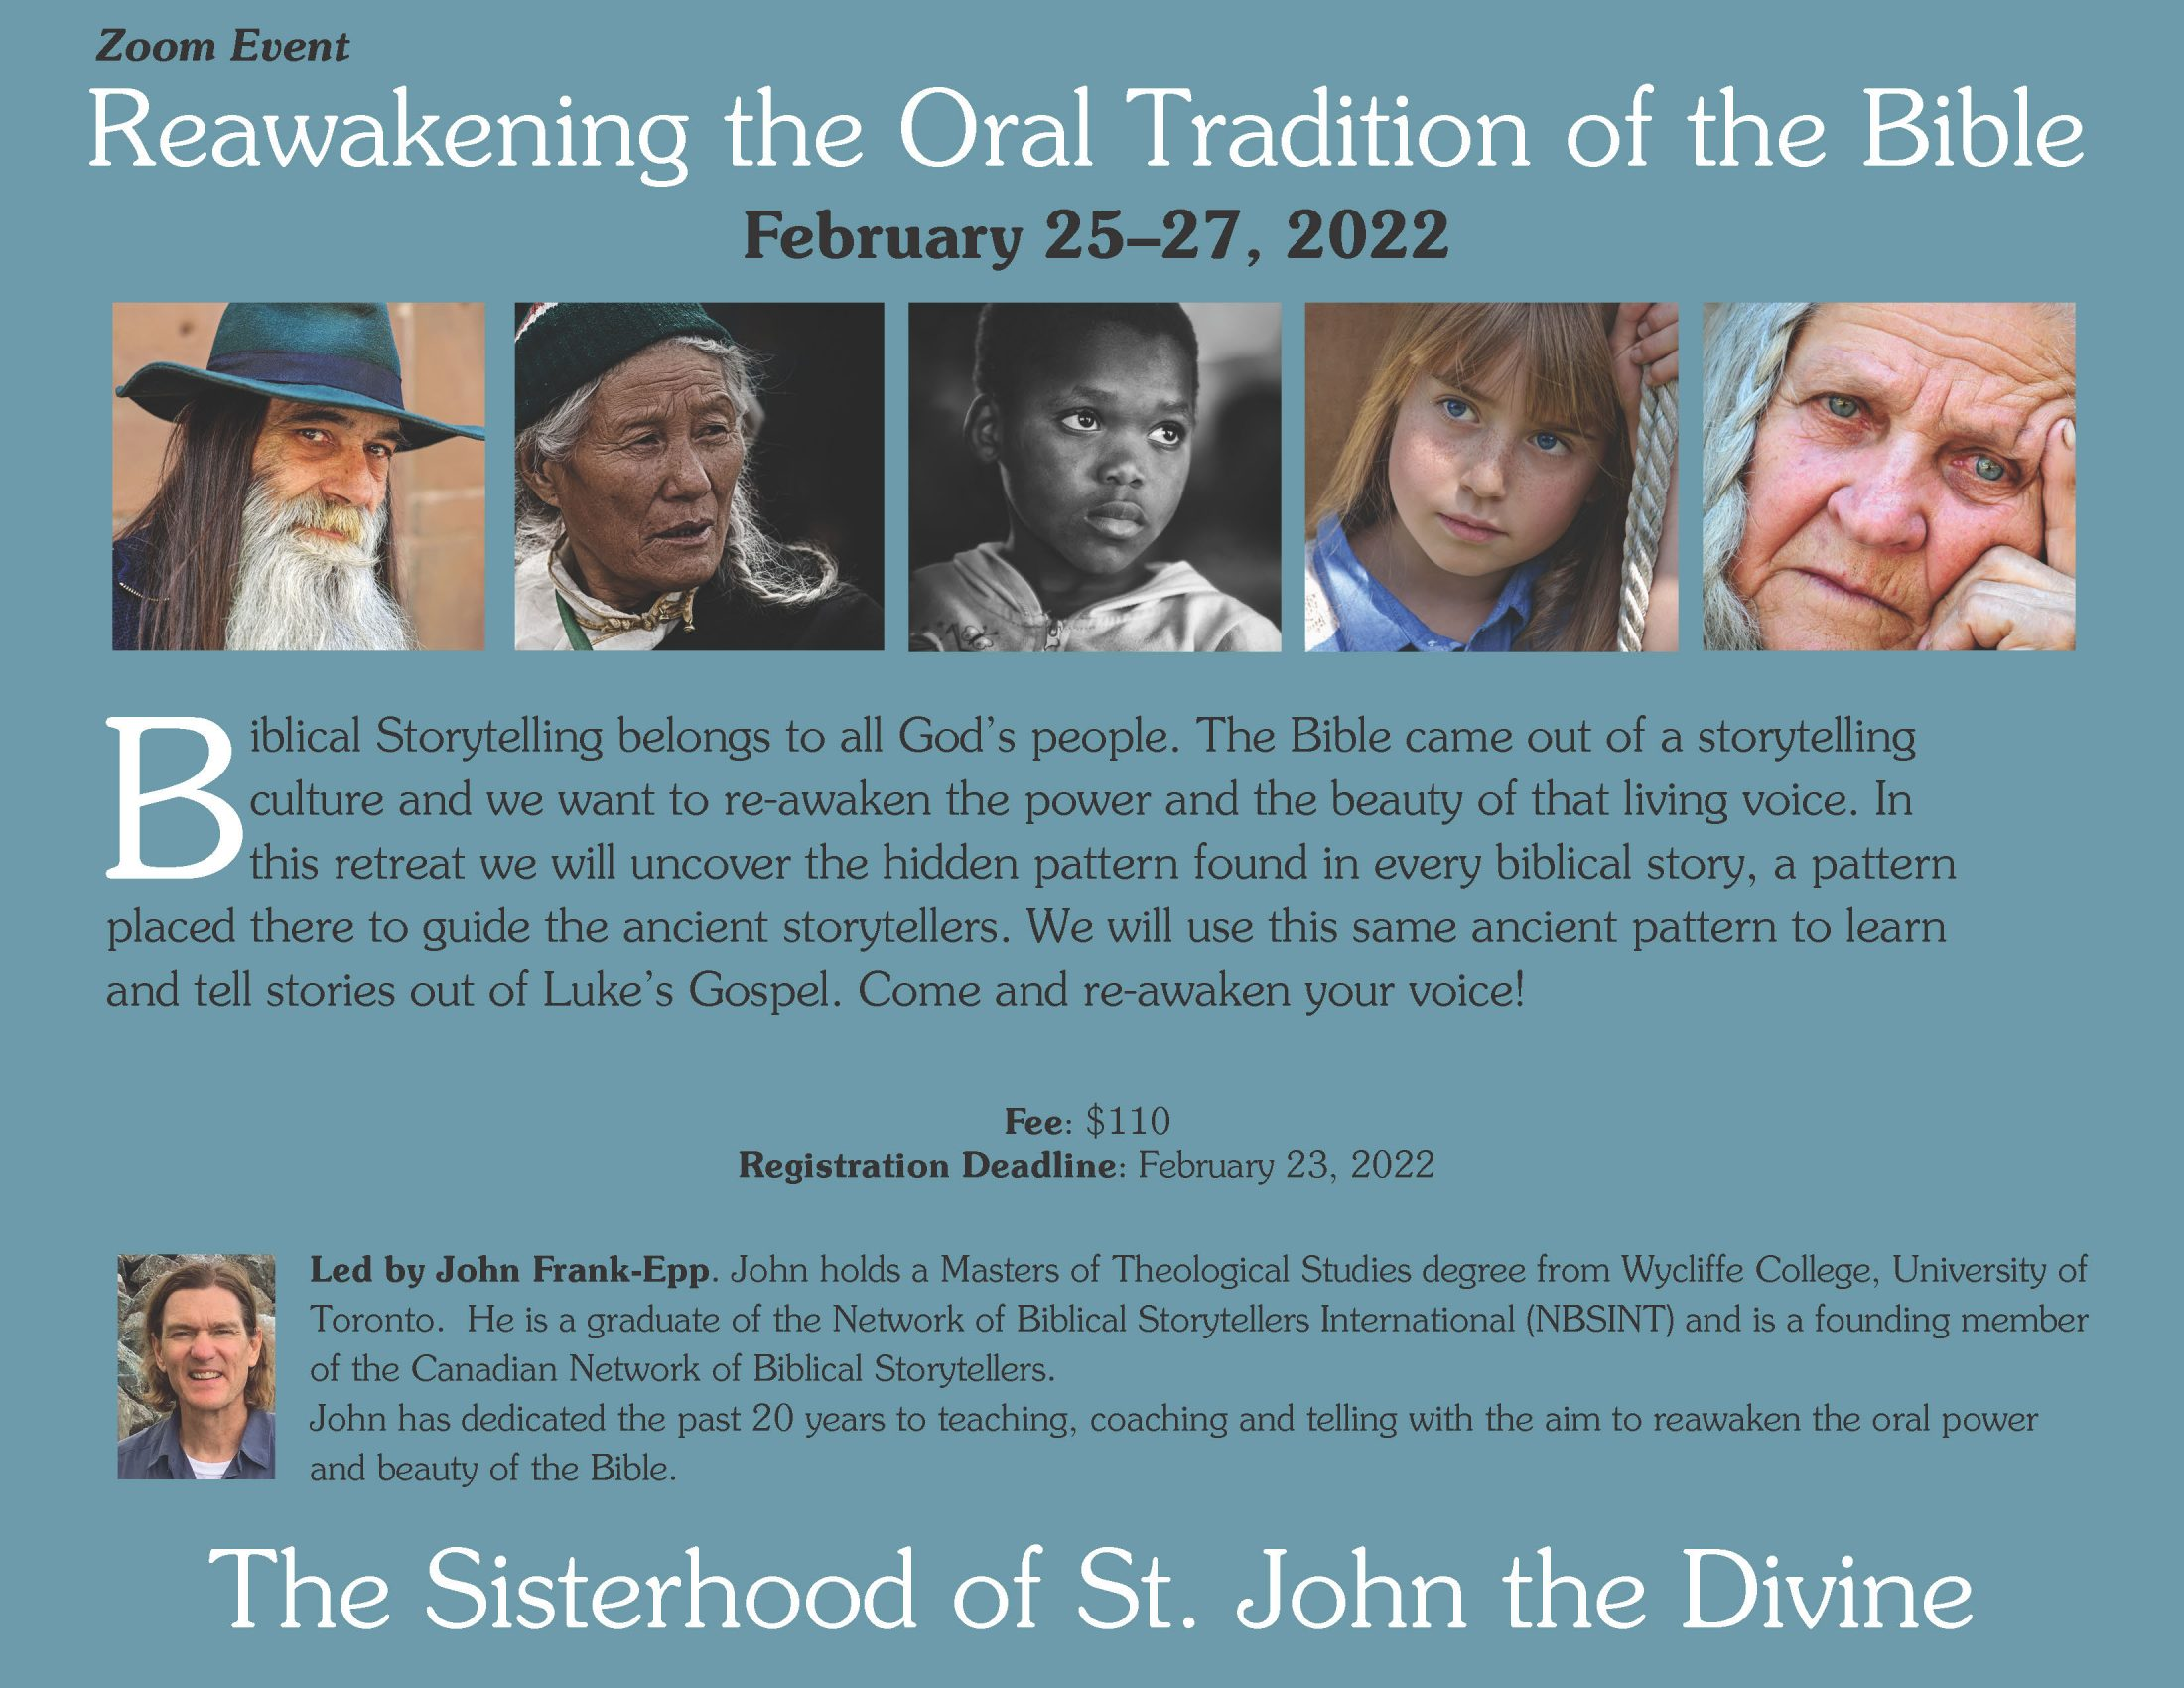 Reawakening the Oral Tradition of the Bible